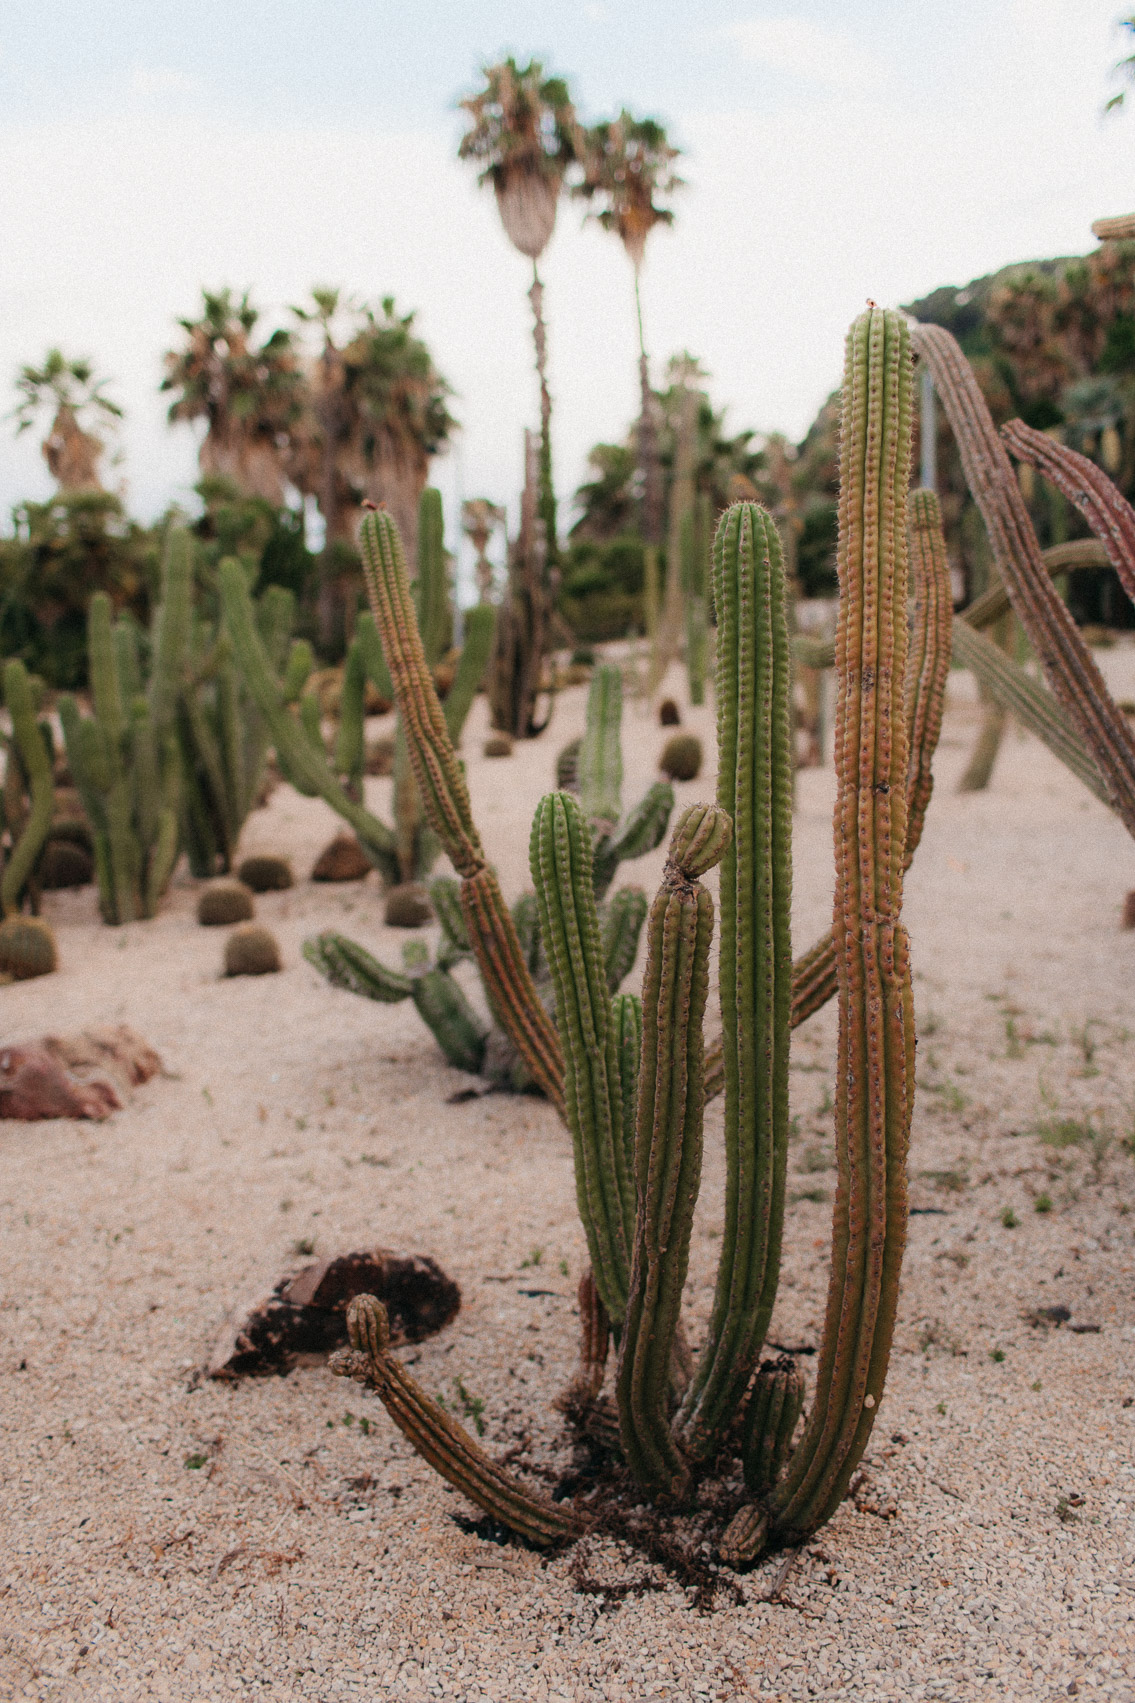 Barcelona cactus garden - The cat, you and us